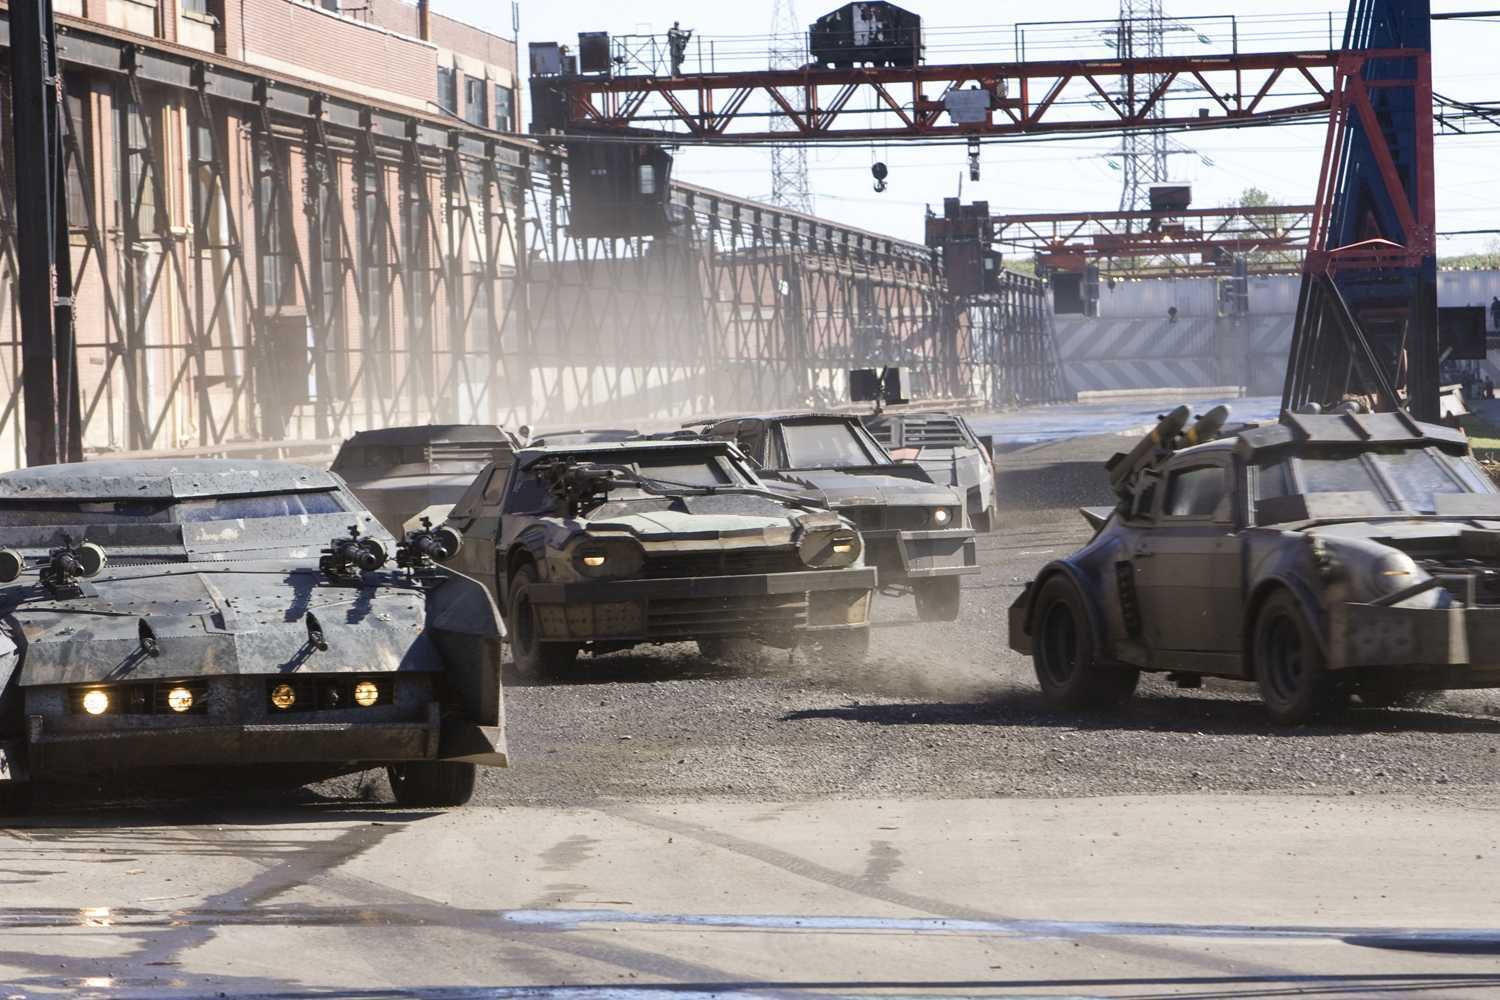 death race images death race#1 hd wallpaper and background photos